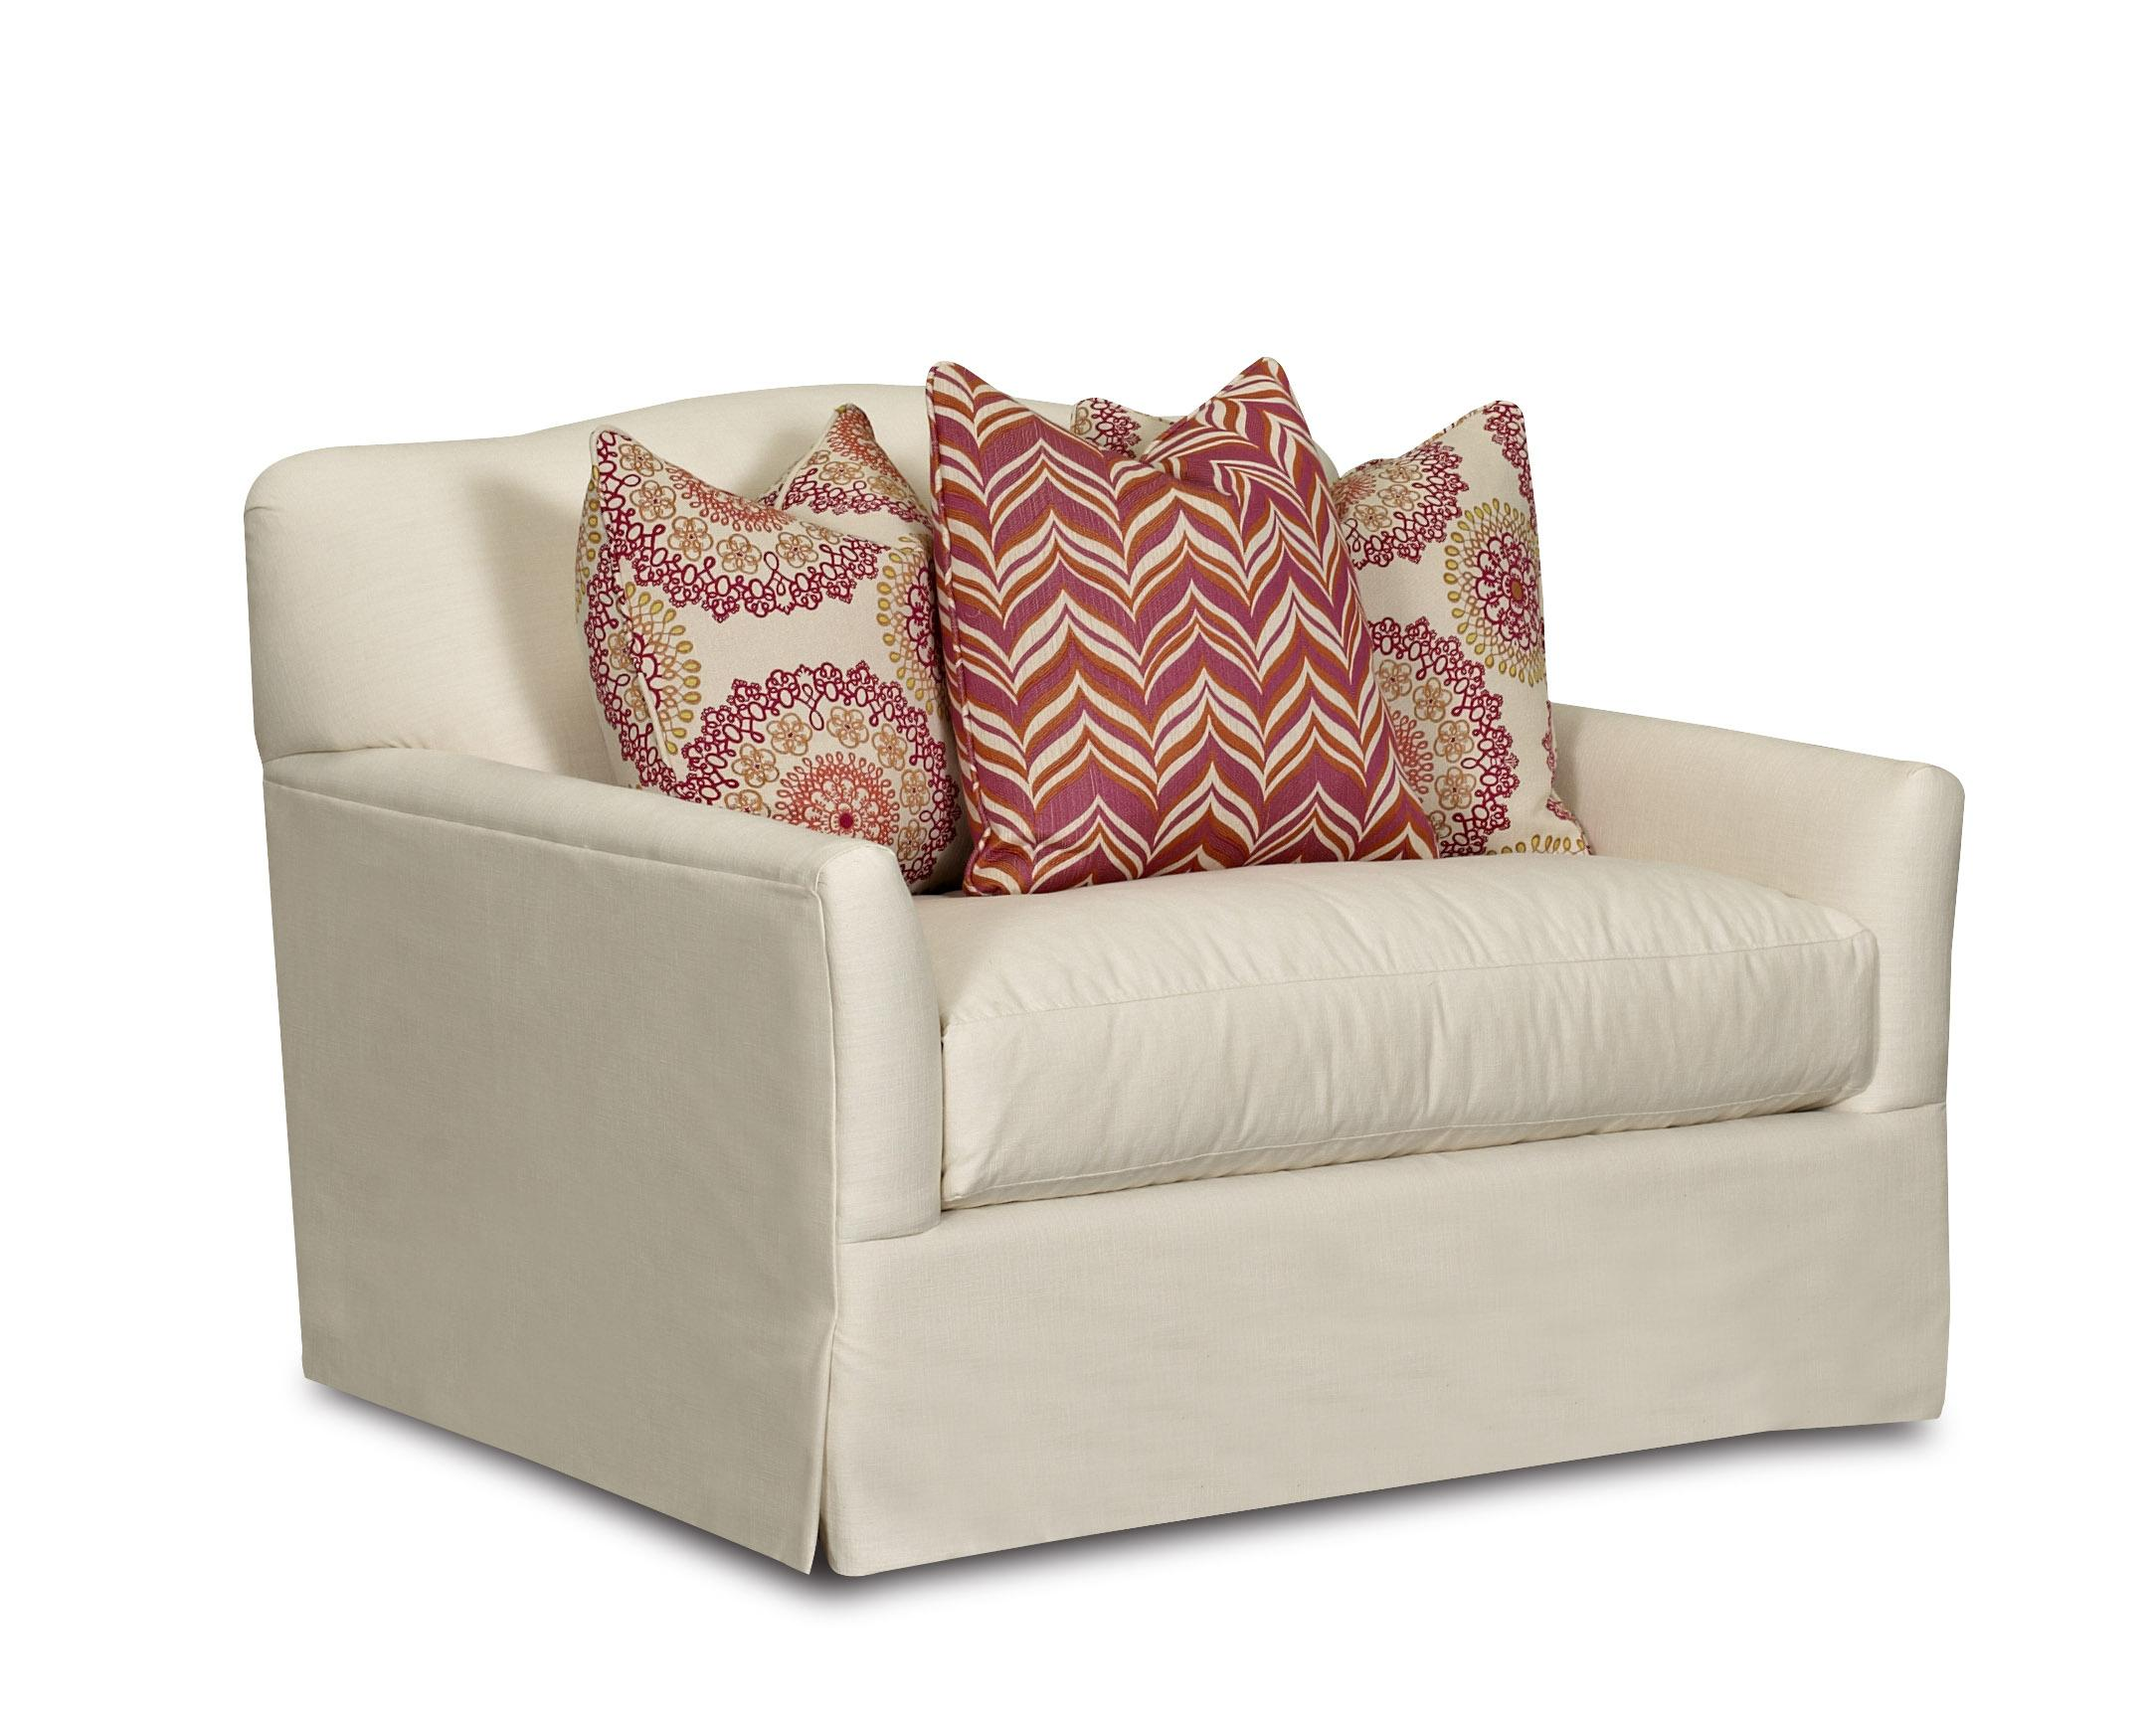 transitional chair with bench seat cushion camel back and